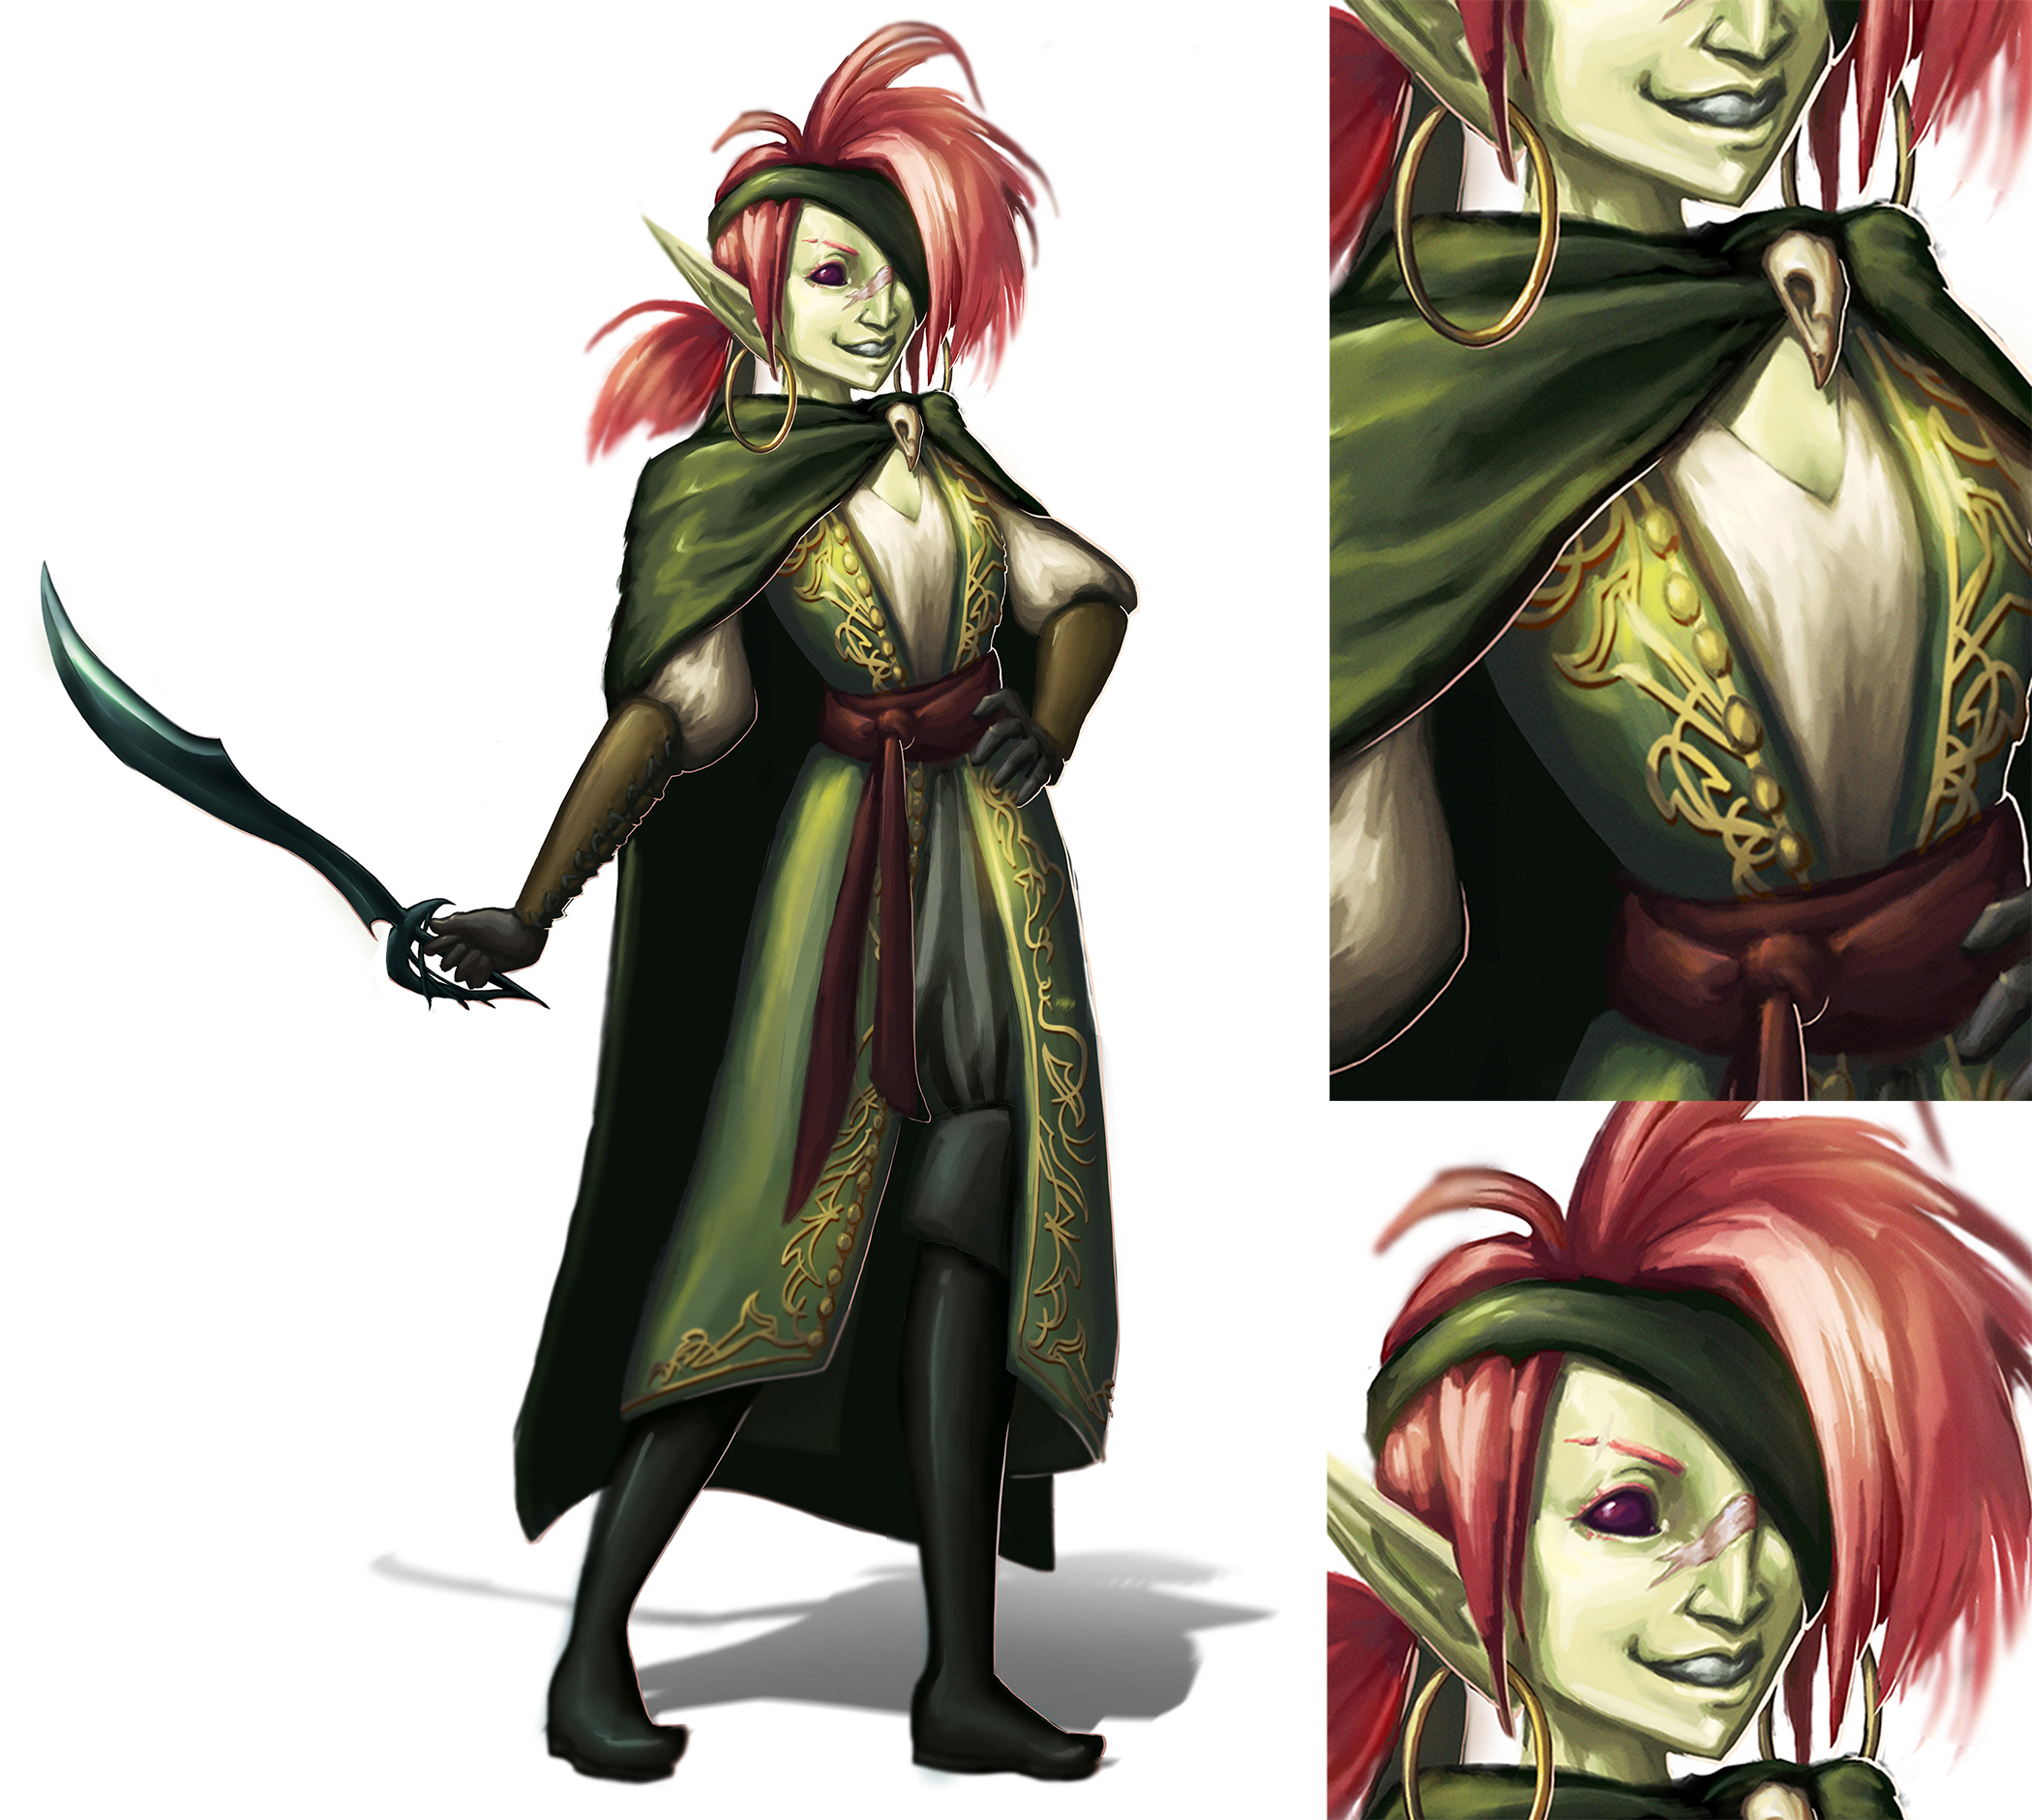 Above: design of a shady but fun-loving pirate from another world  Right: detail images